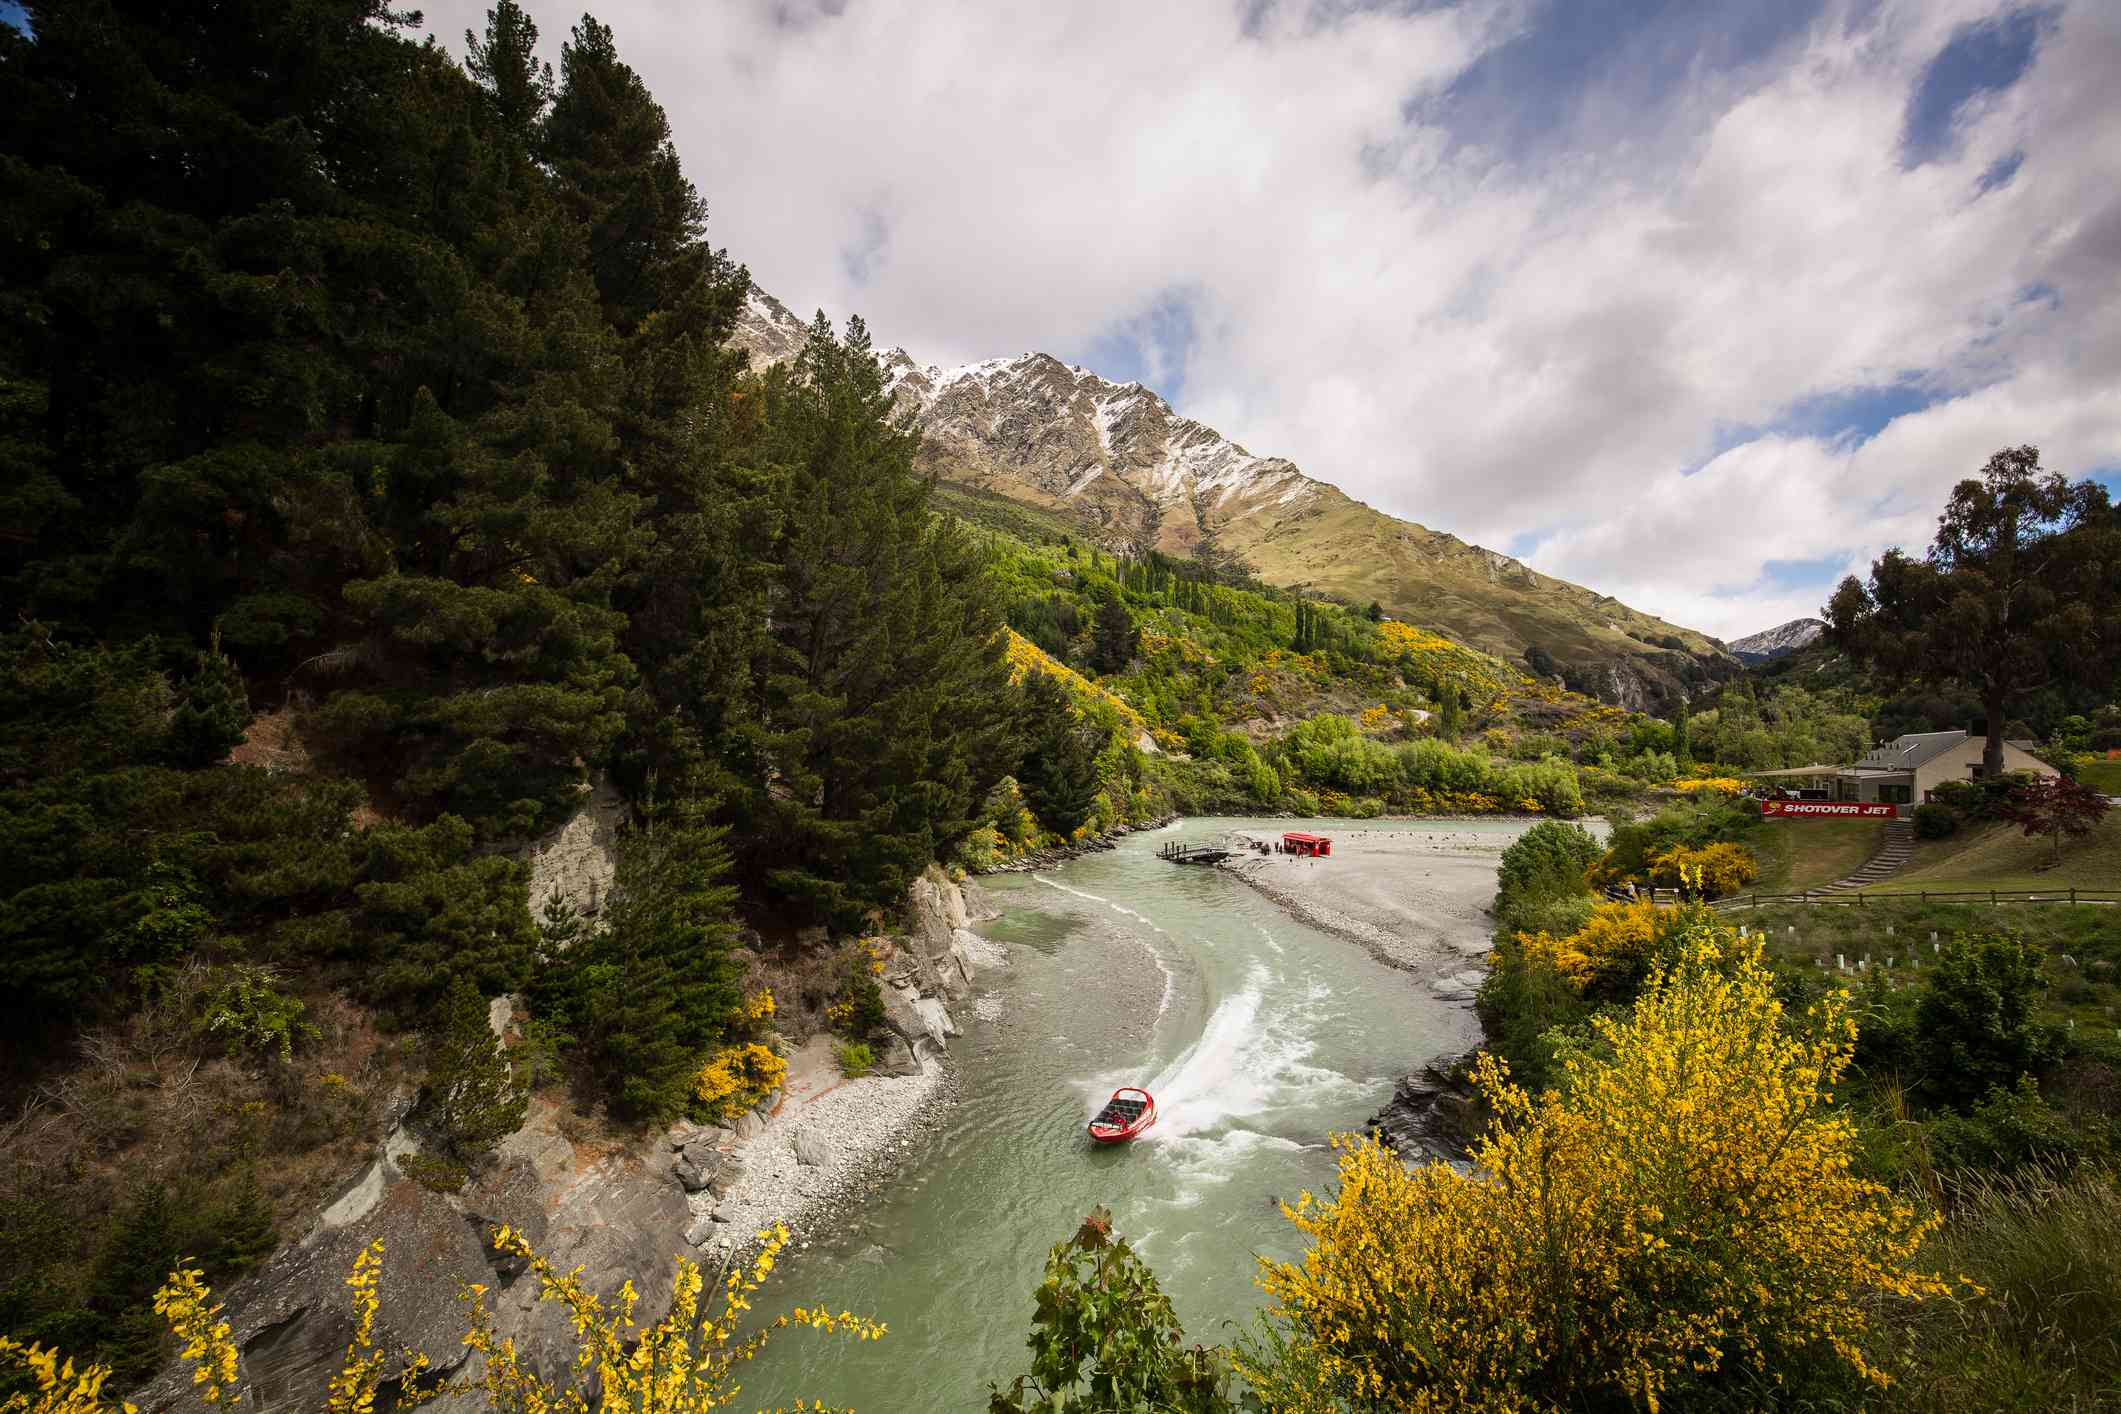 jet boat on a river in a canyon surrounded by trees and mountains